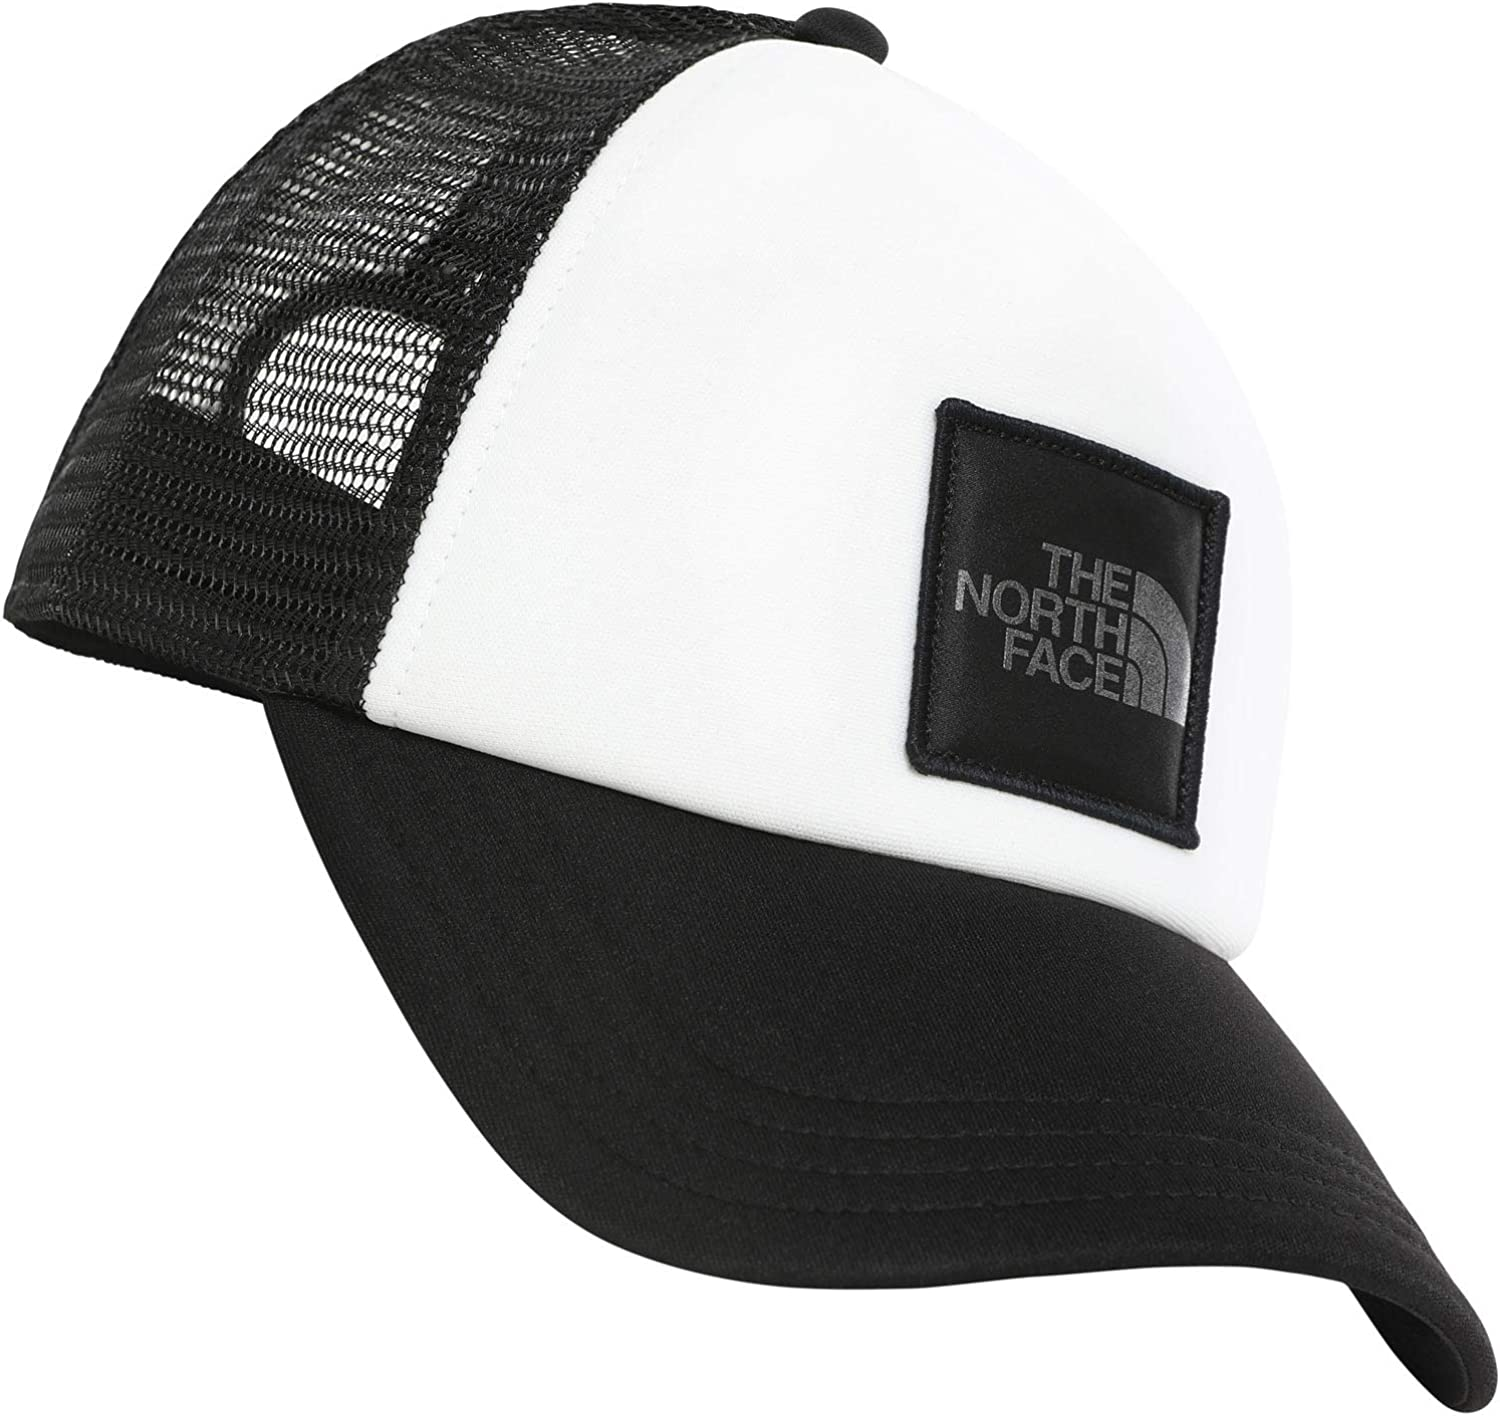 The North Face Logo Gorra: Amazon.es: Ropa y accesorios